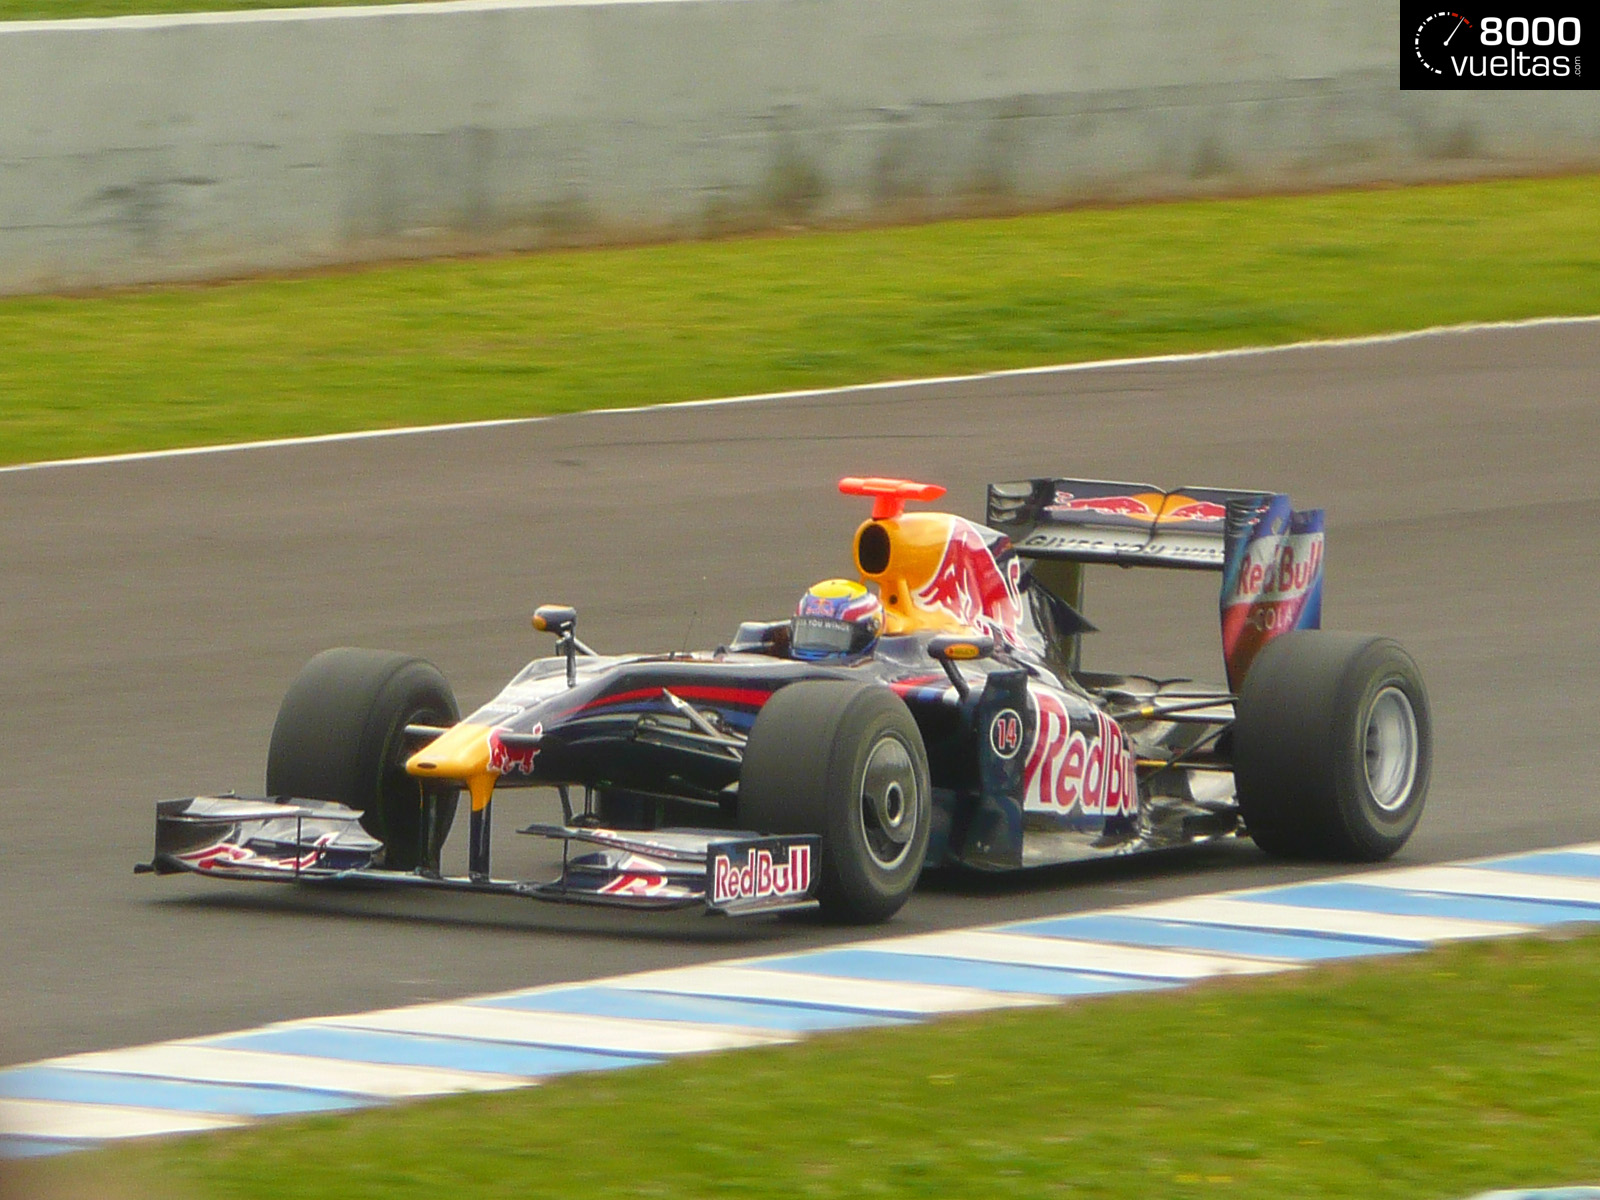 Red Bull RB5 frontal